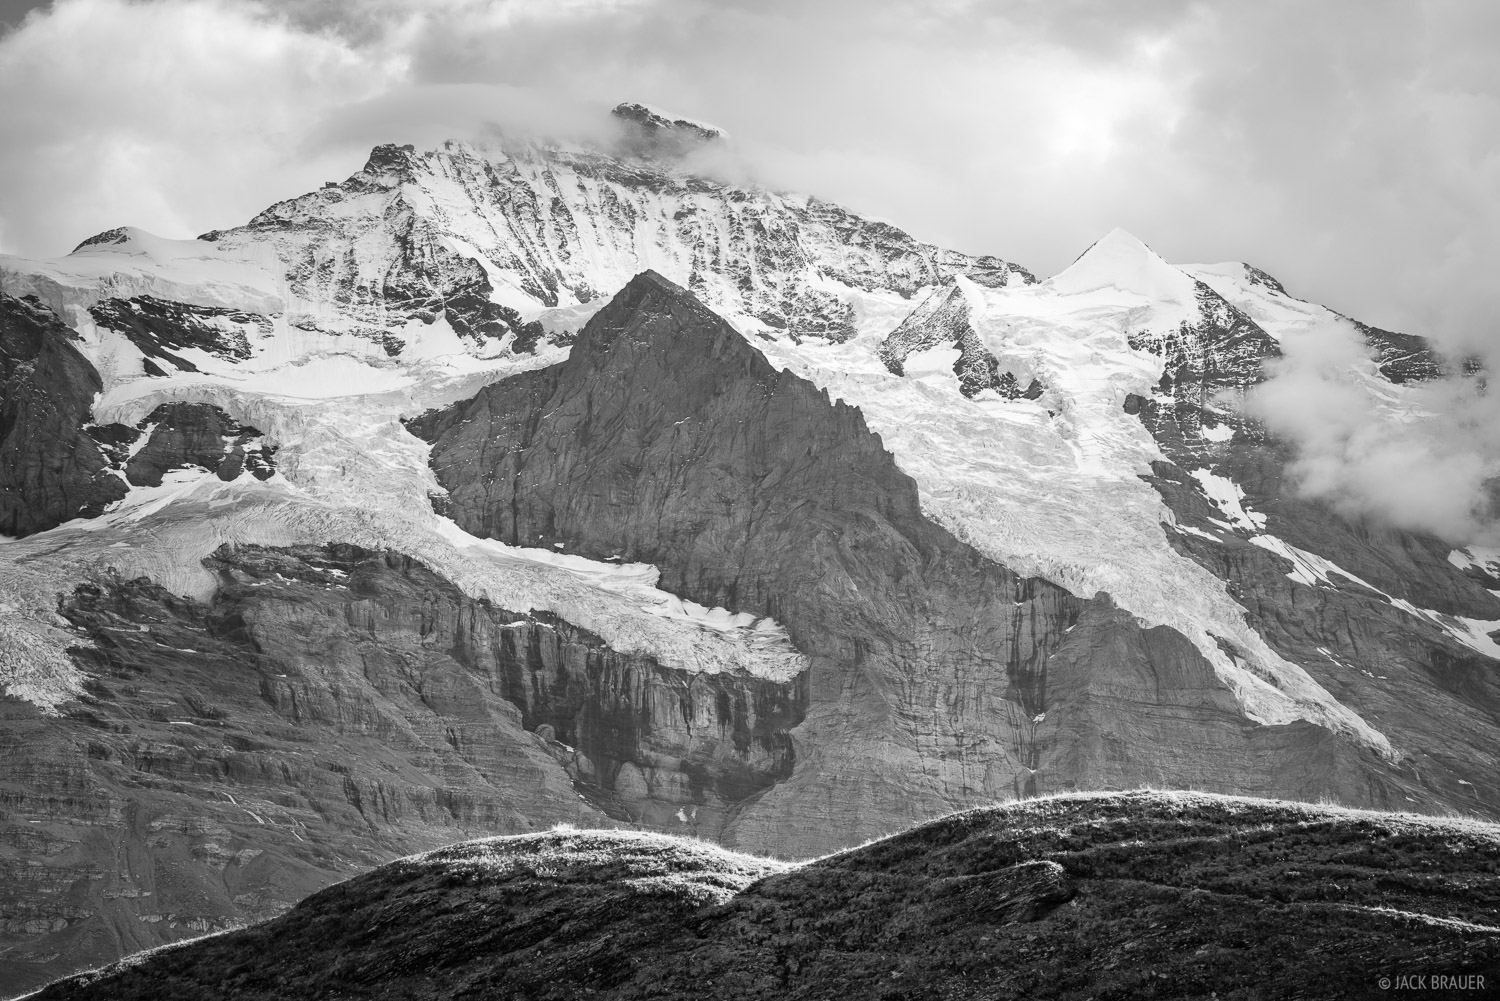 Bernese Alps, Jungfrau, Kleine Scheidegg, Switzerland, Alps, photo